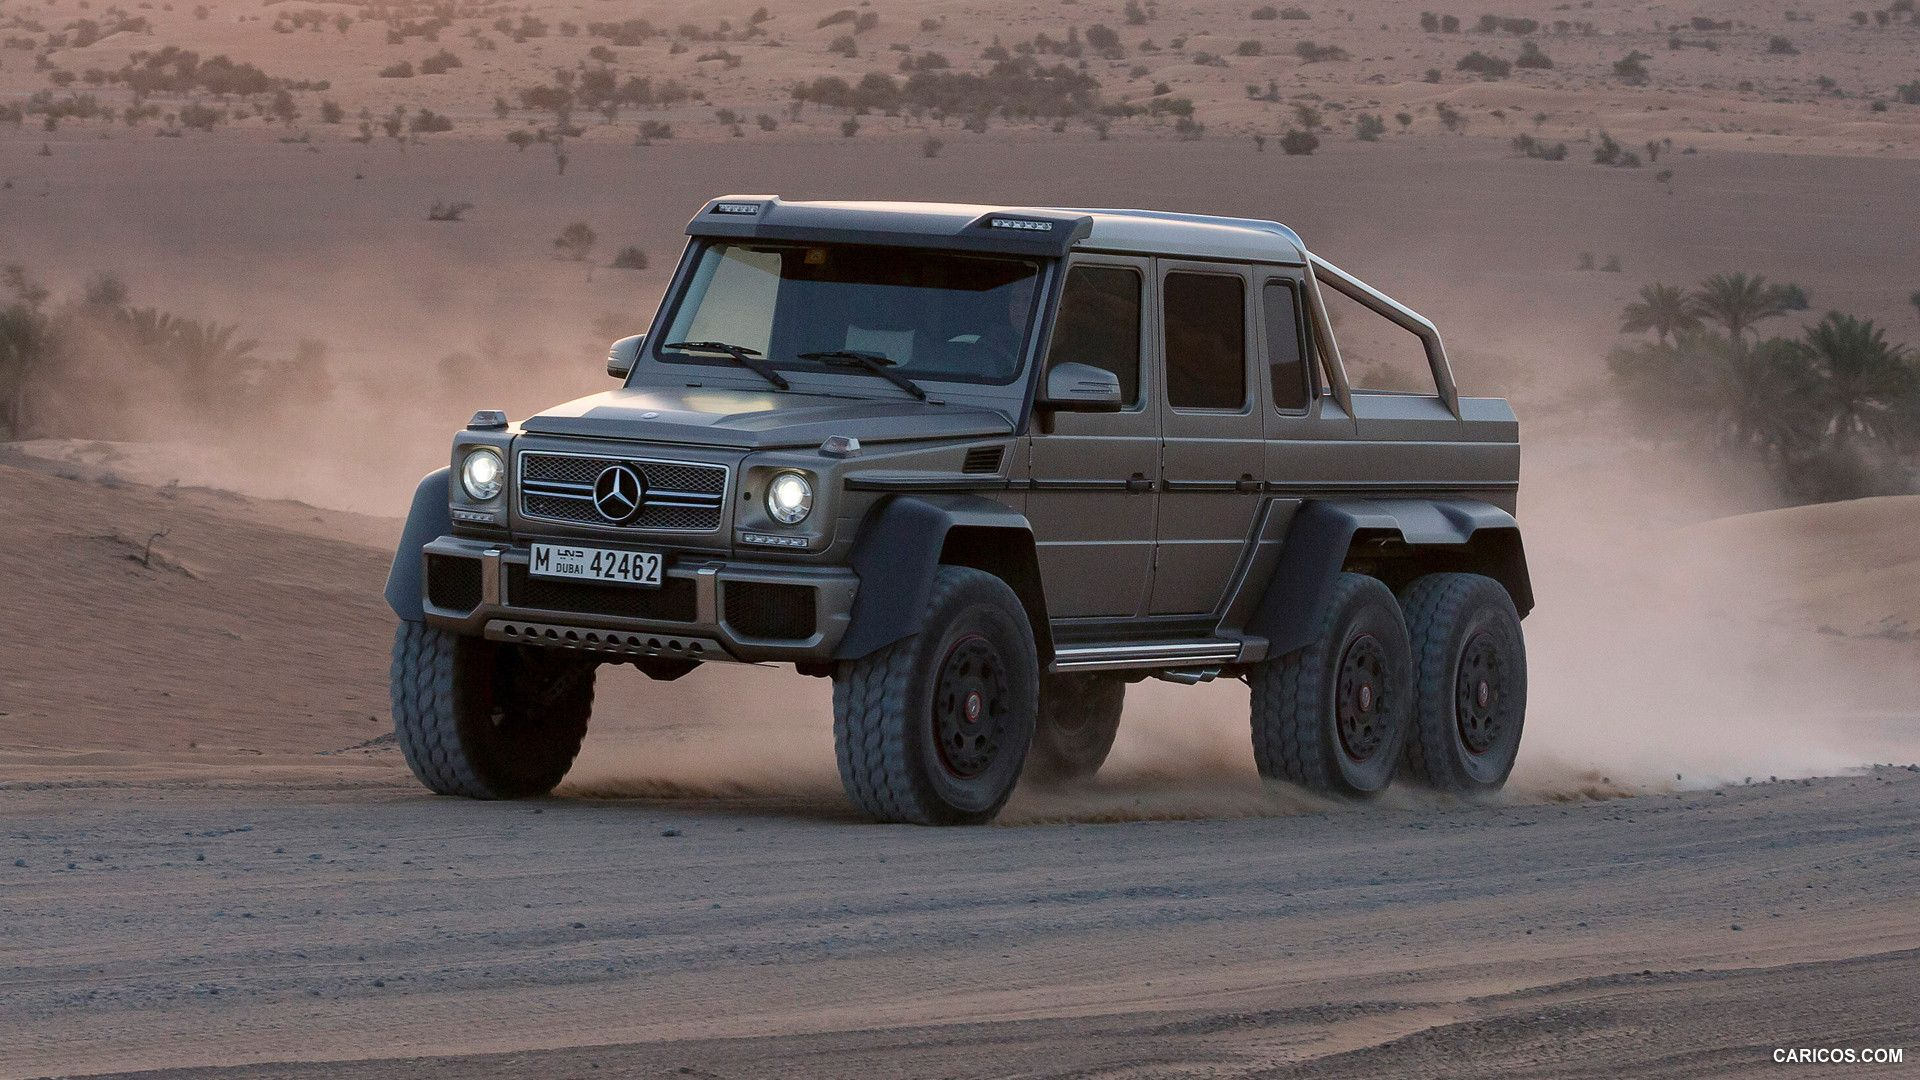 in news benz h for sale delightful frankfurt an the mercedes exercise amg based brabus is on auto show insanity